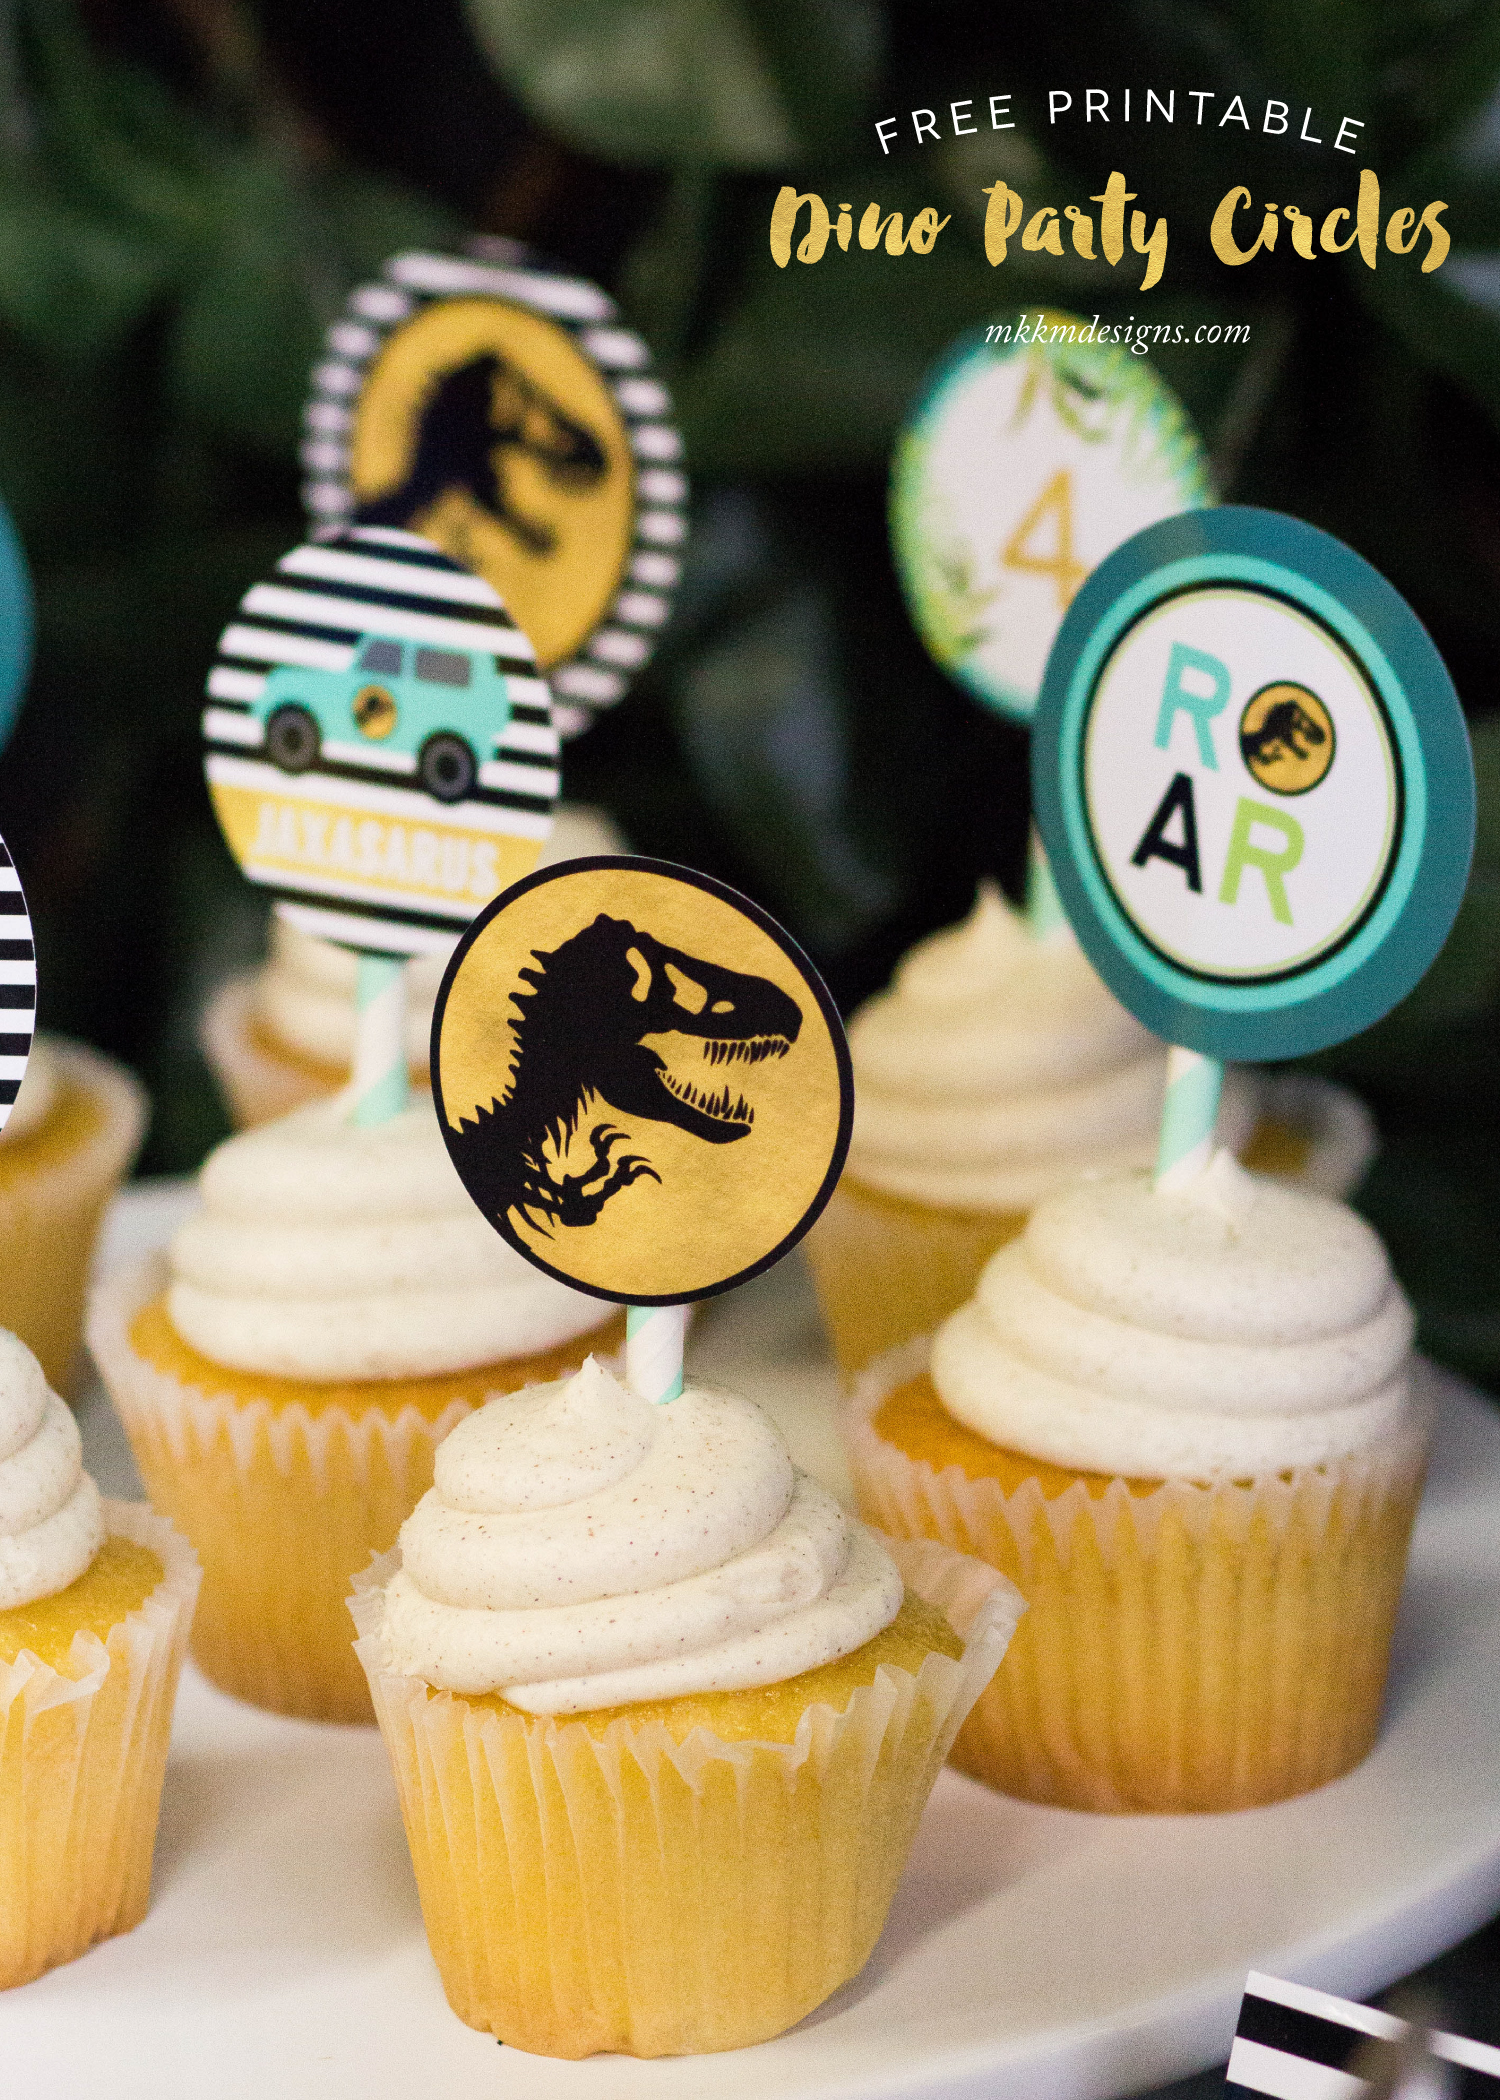 Free Printable Dino Cupcake Toppers by MKKM Designs